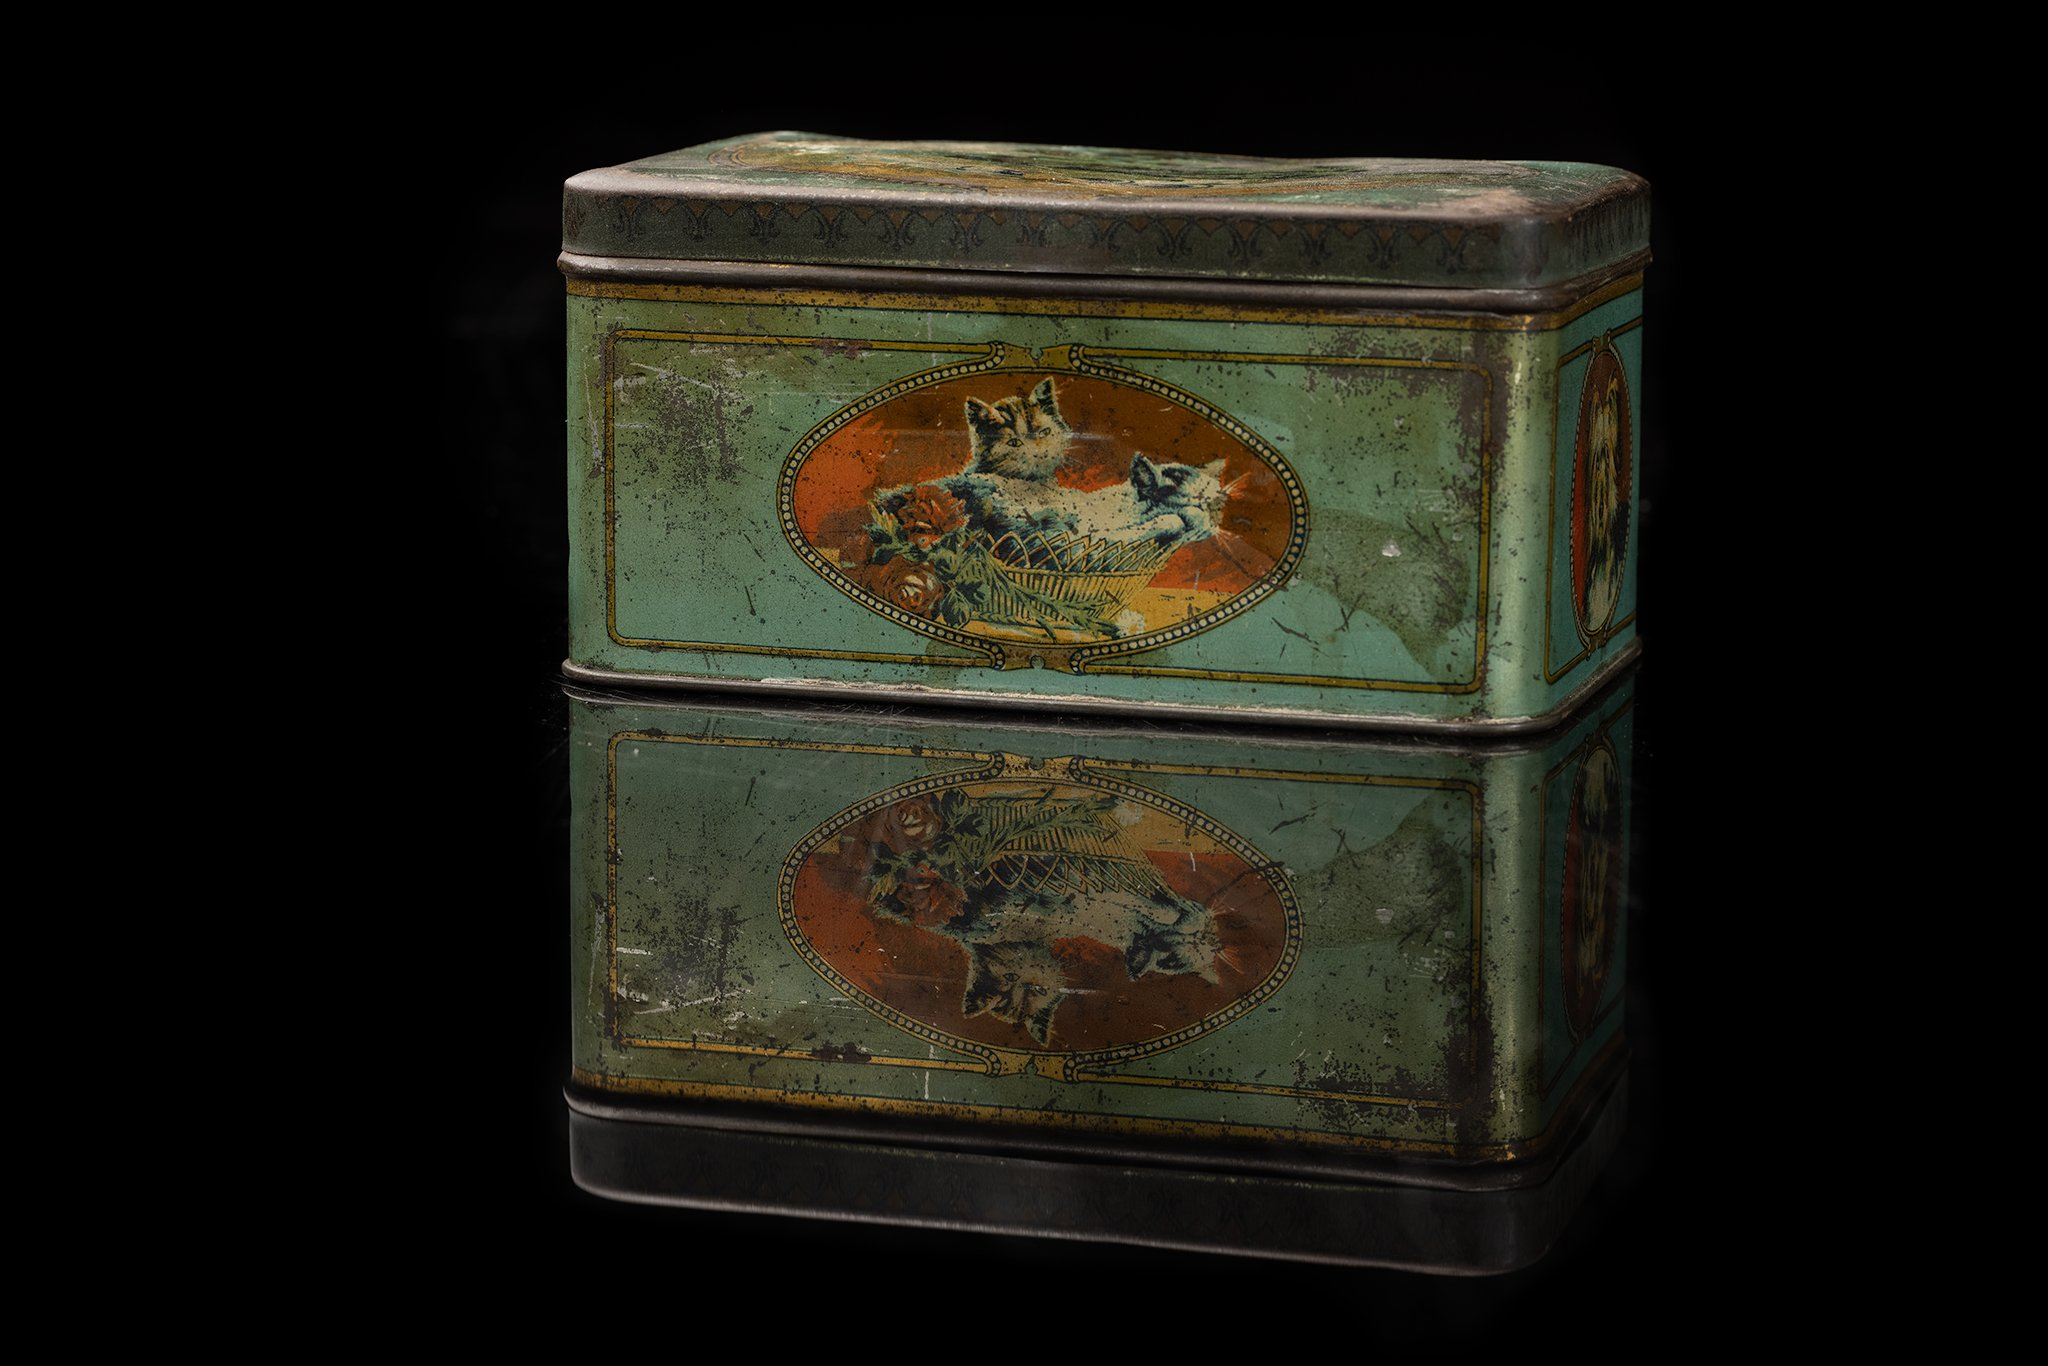 Vintage-tin-dog-box-olda